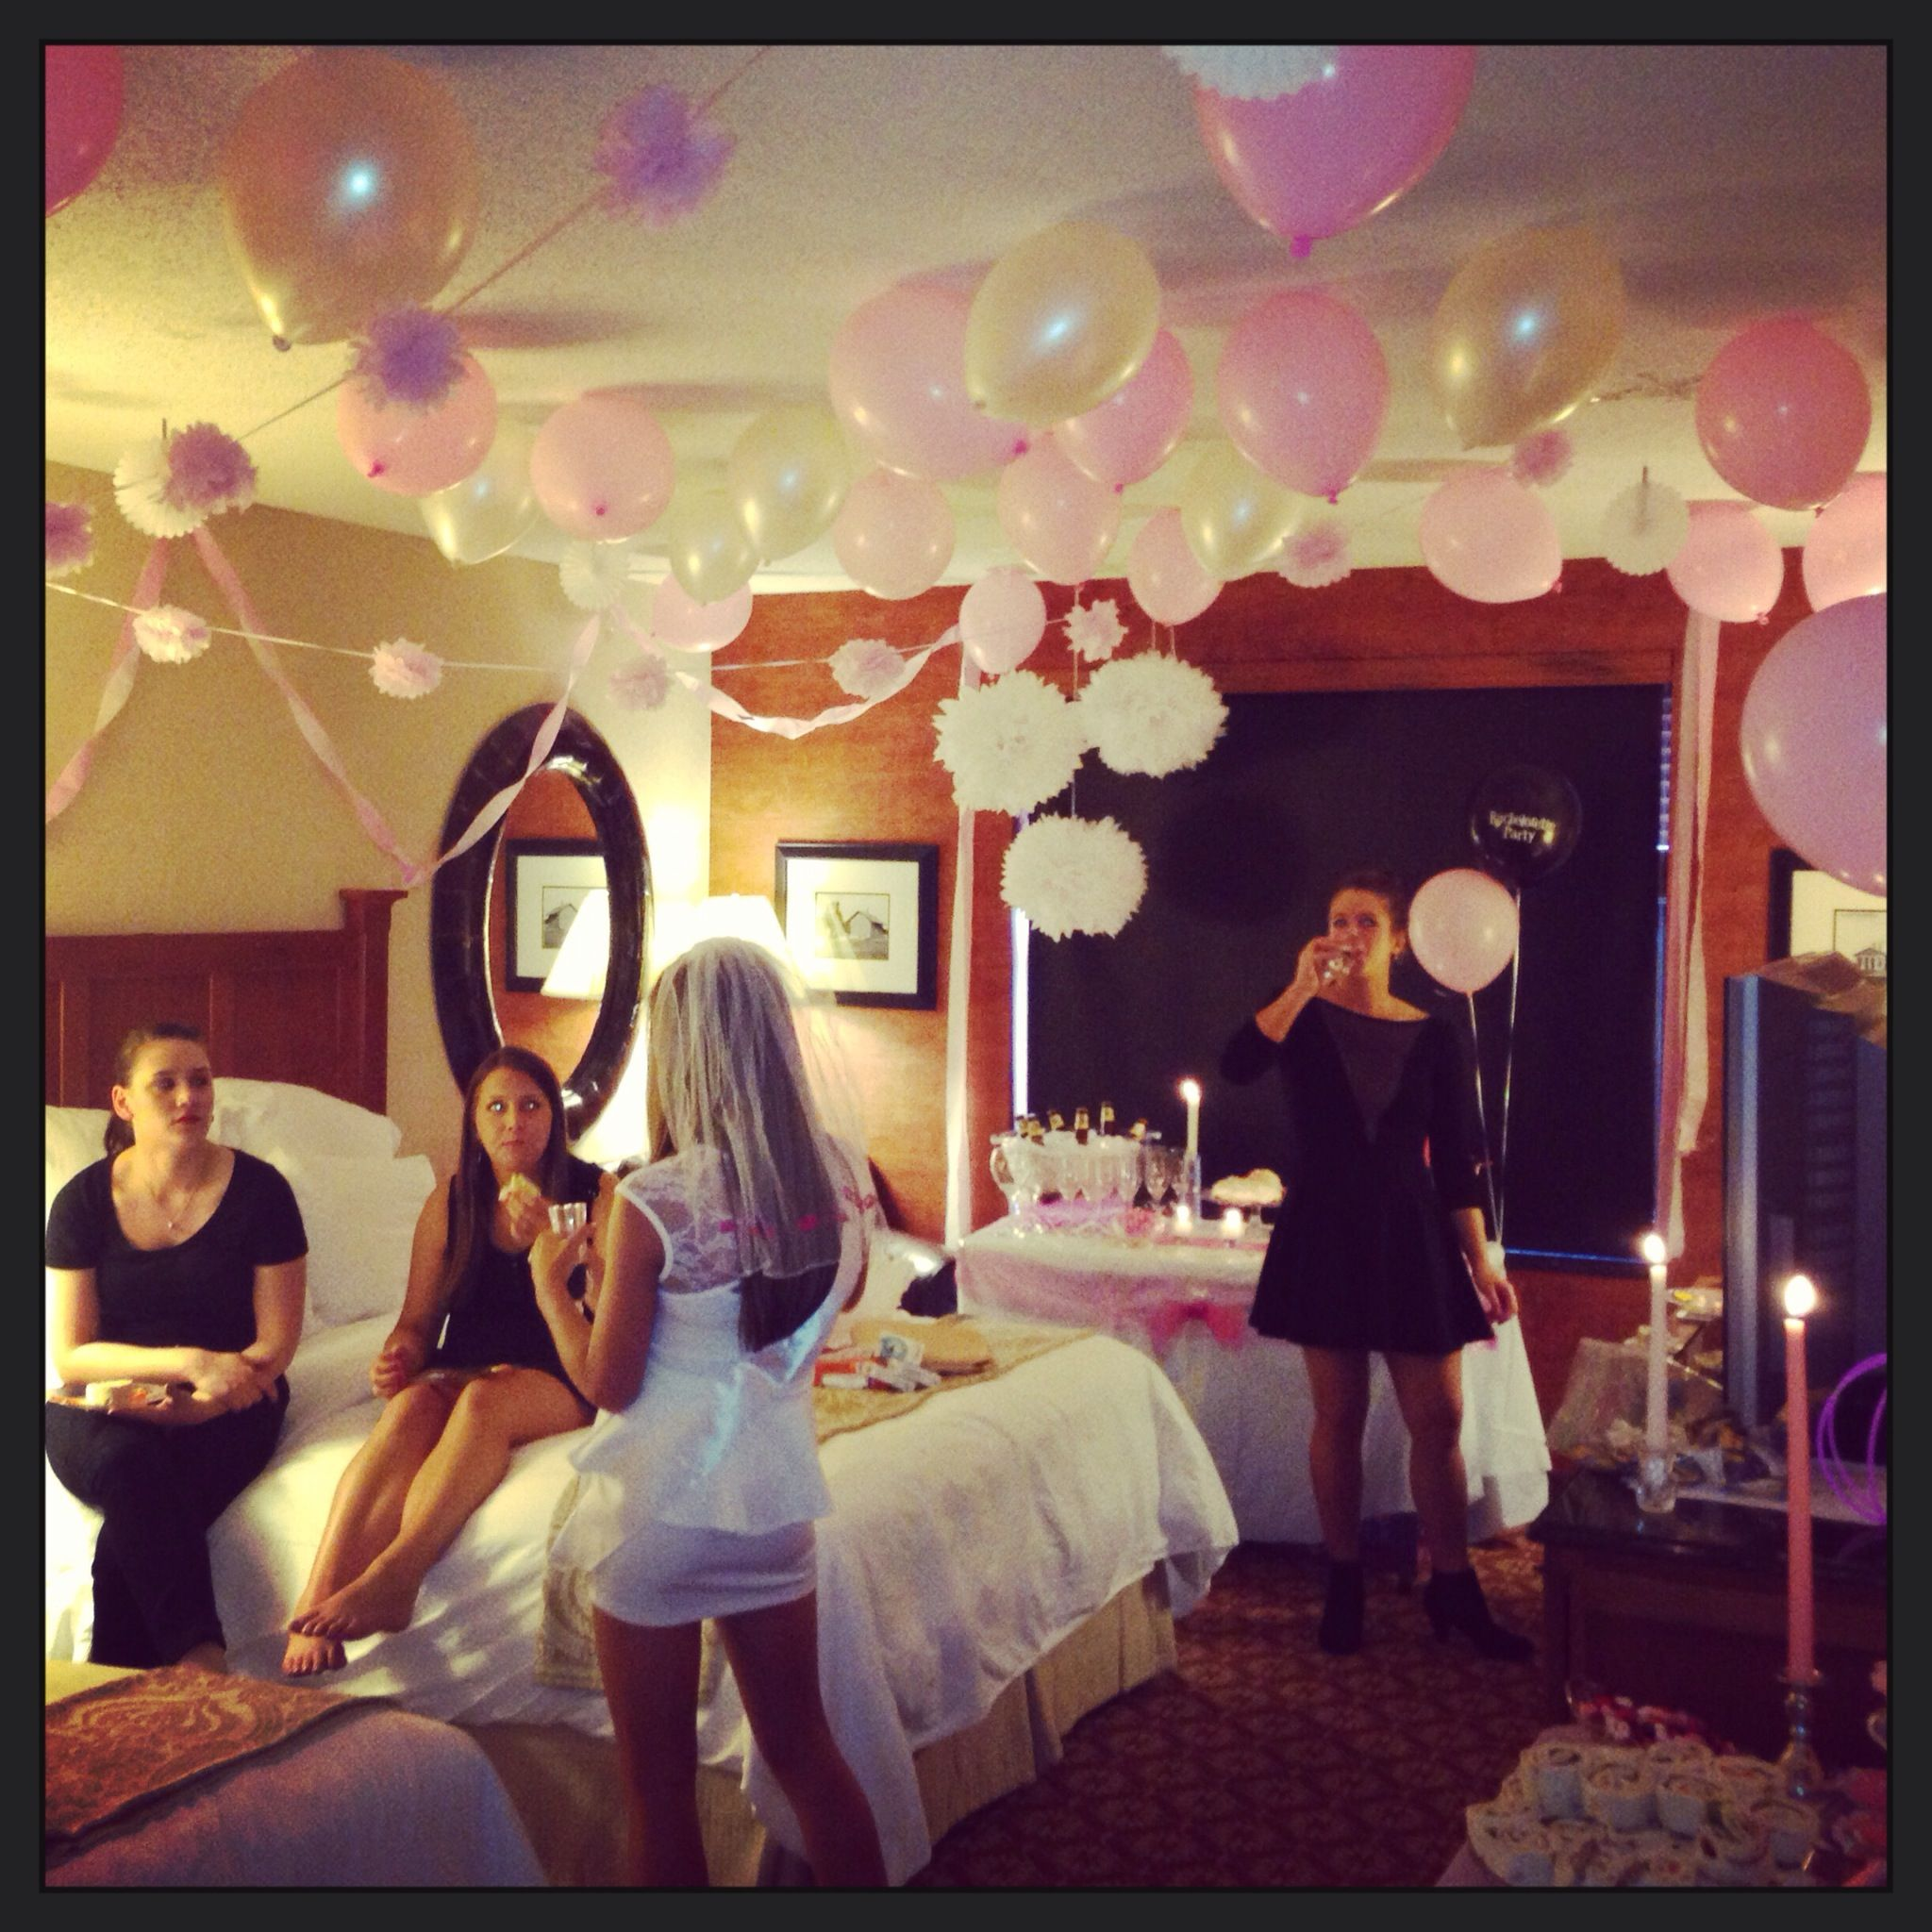 Bachelorette Party Dream Wedding Ideas For Someday